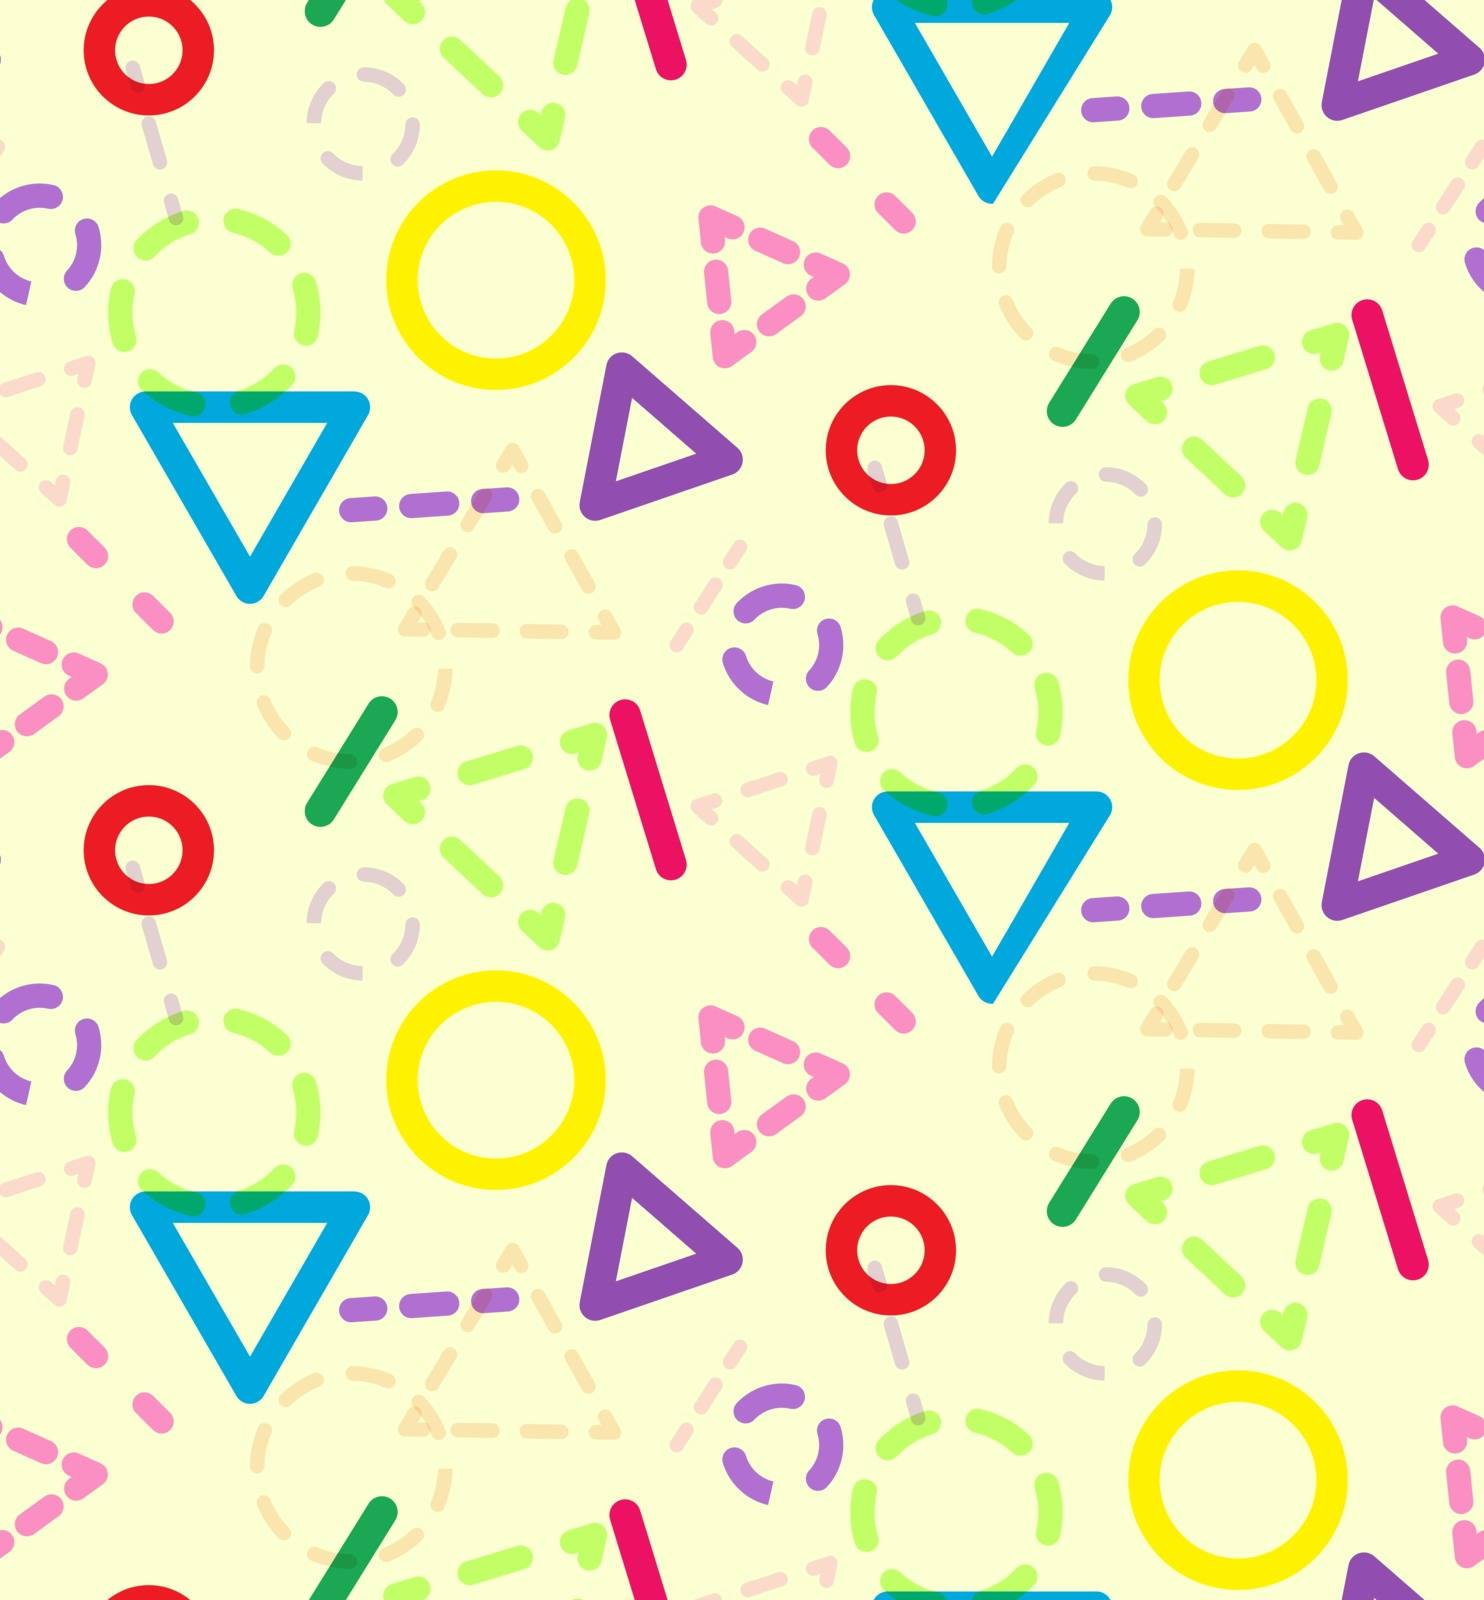 Abstract color geometric kids pattern, bright texture with simple geometric elements